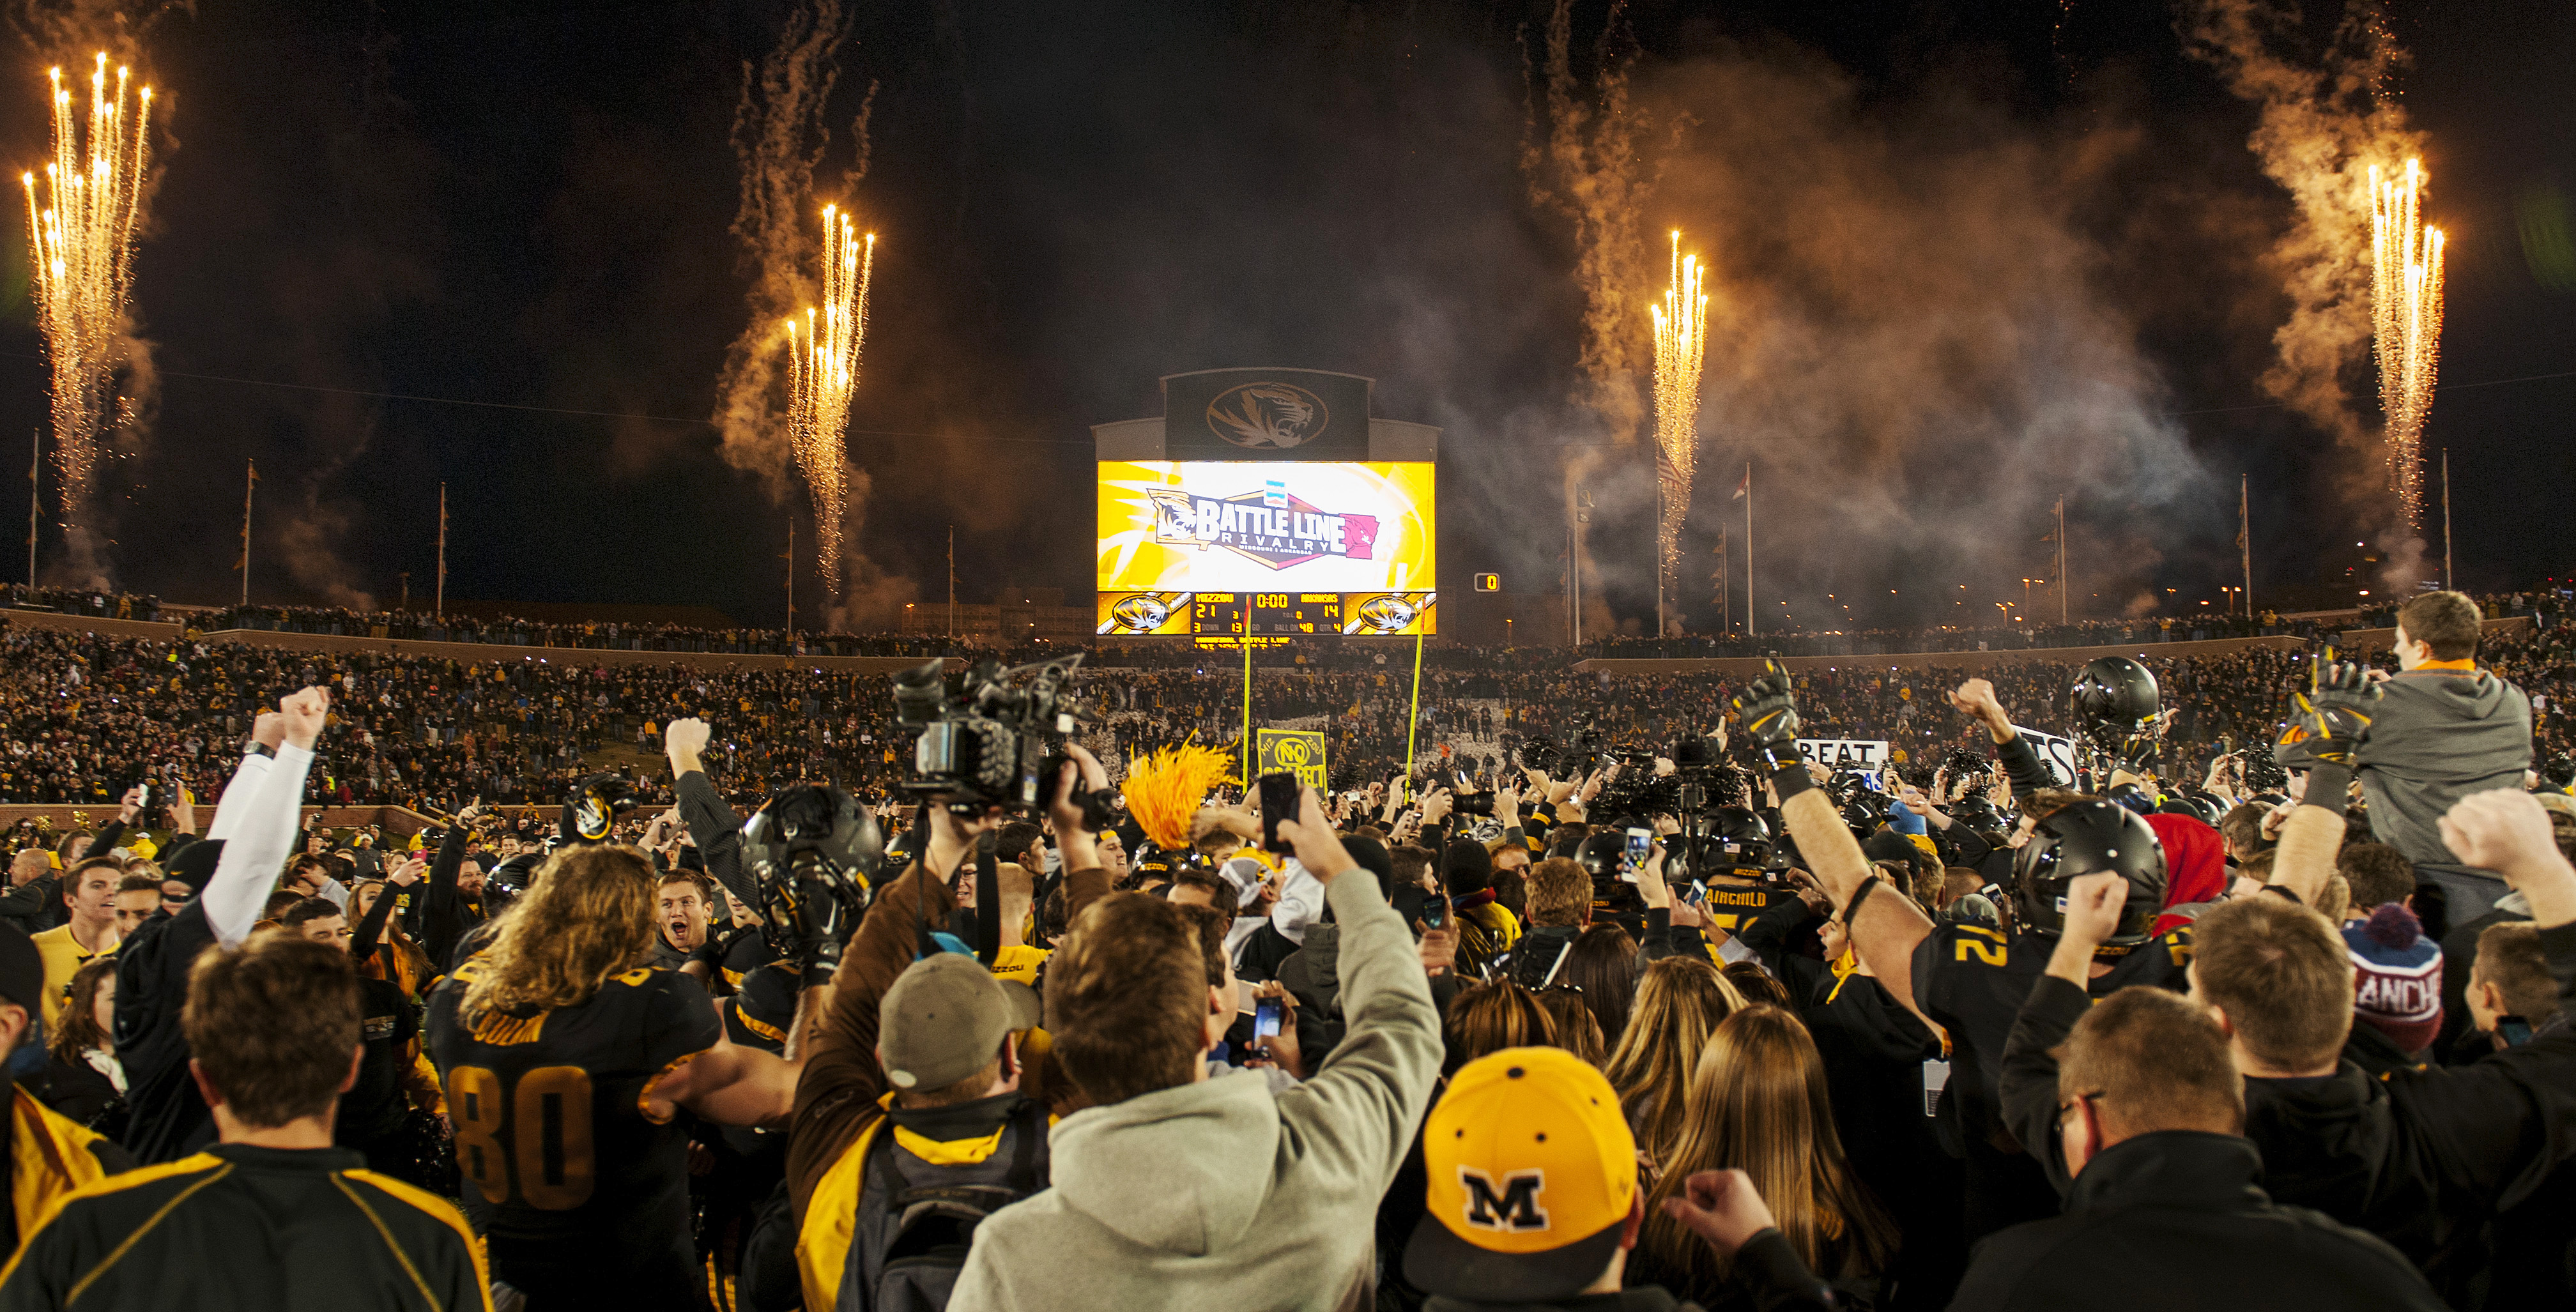 Missouri fans rush the field and celebrate after the team's  21-14 victory over Arkansas in an NCAA college football game Friday, Nov. 28, 2014, in Columbia, Mo. Missouri won 21-14. (AP Photo/L.G. Patterson)